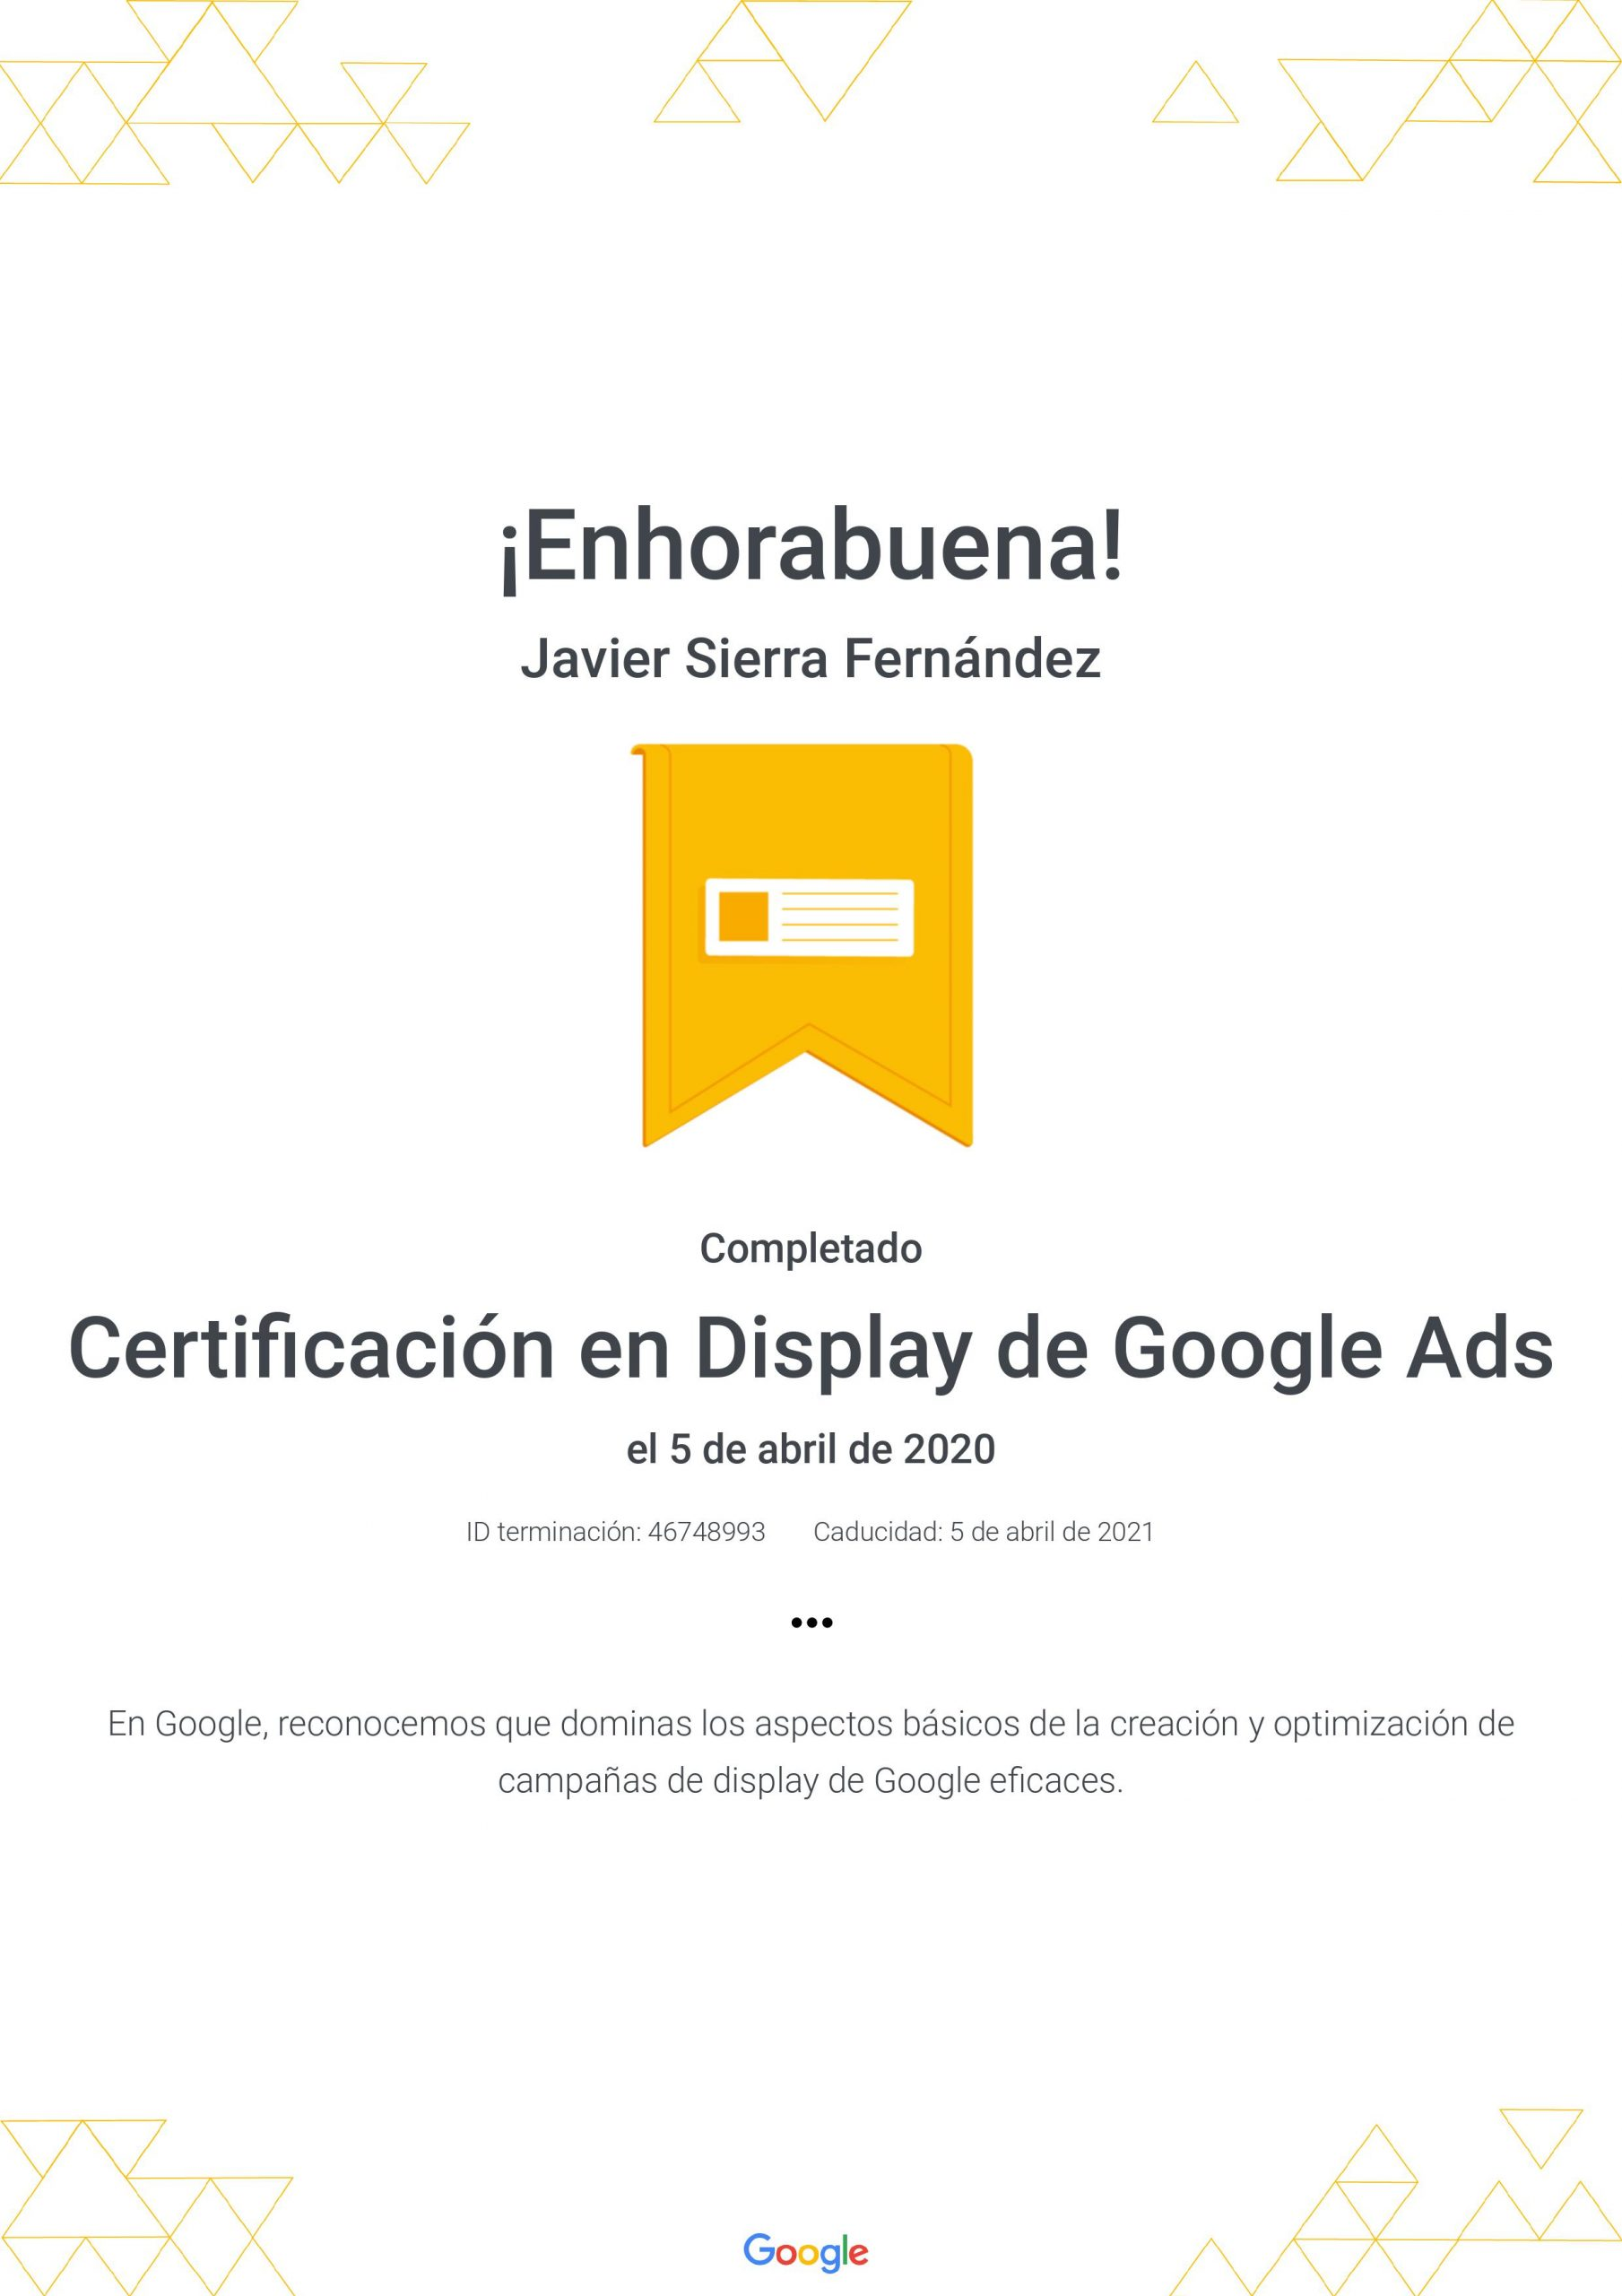 Certificado Google Ads Camapañas de Display